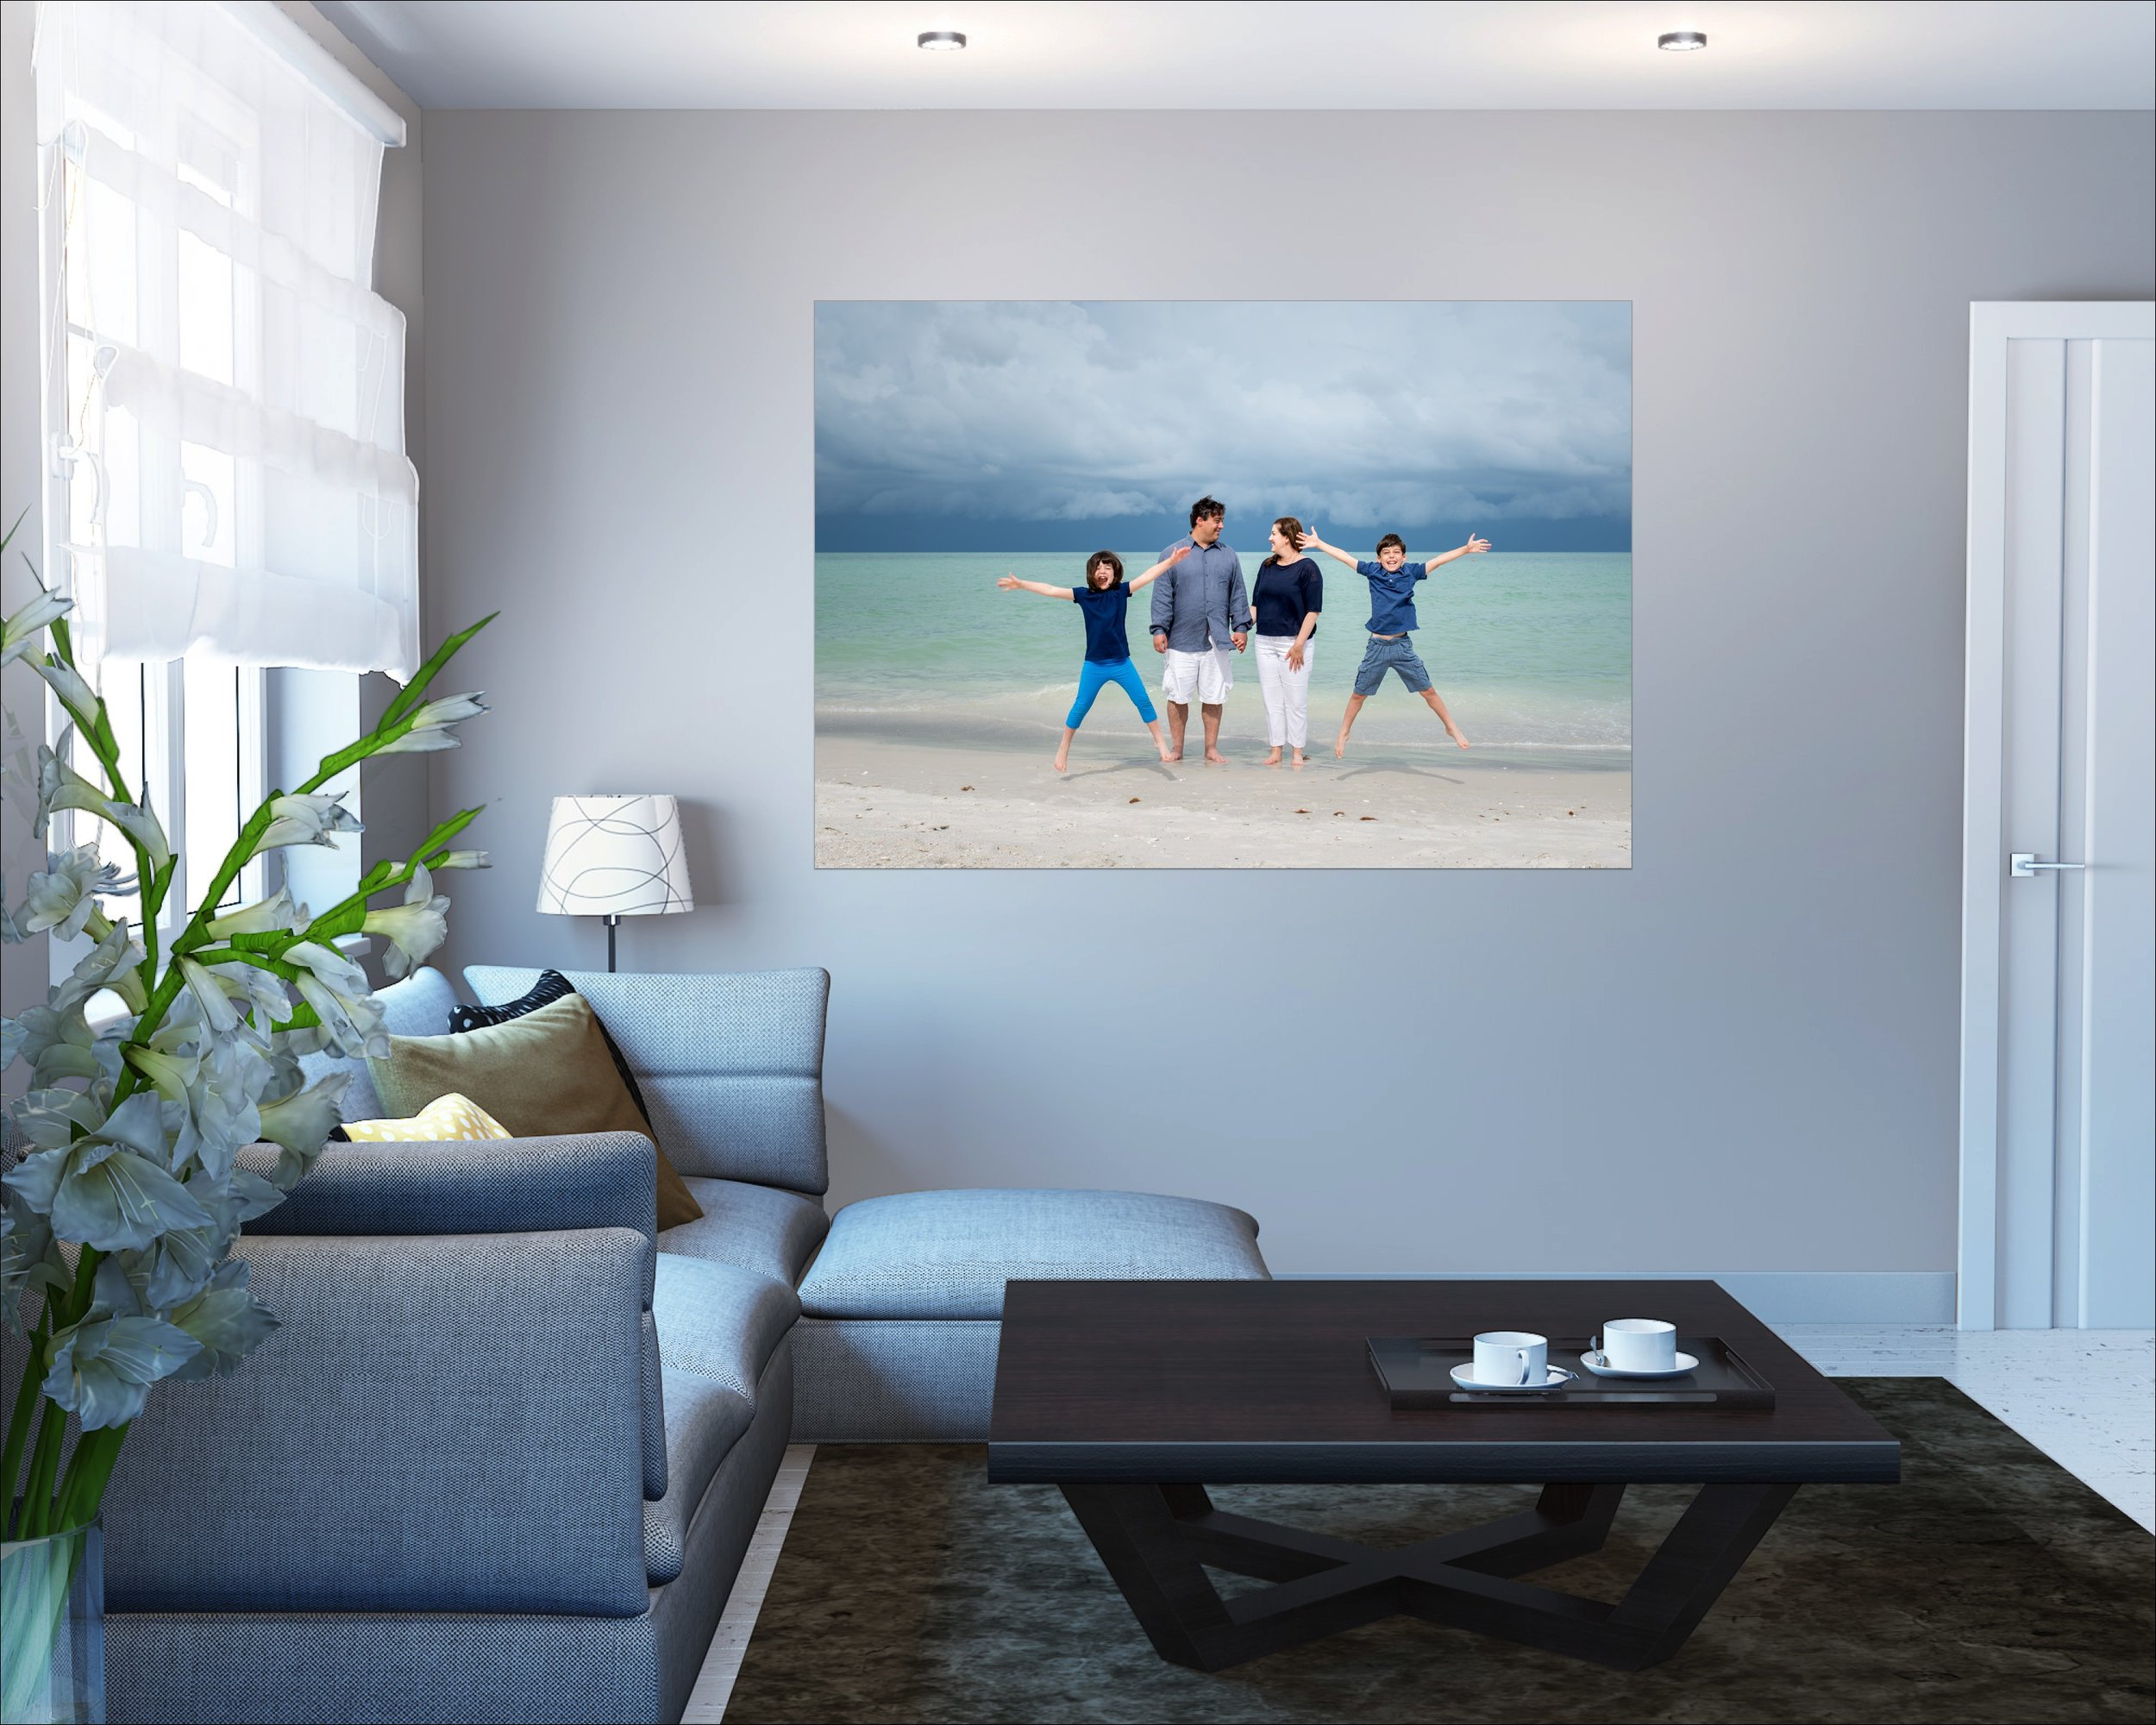 Canvas Collections - Our custom designed canvas collections are archival quality. Multiple sizes available and custom as well to perfectly fit your space.